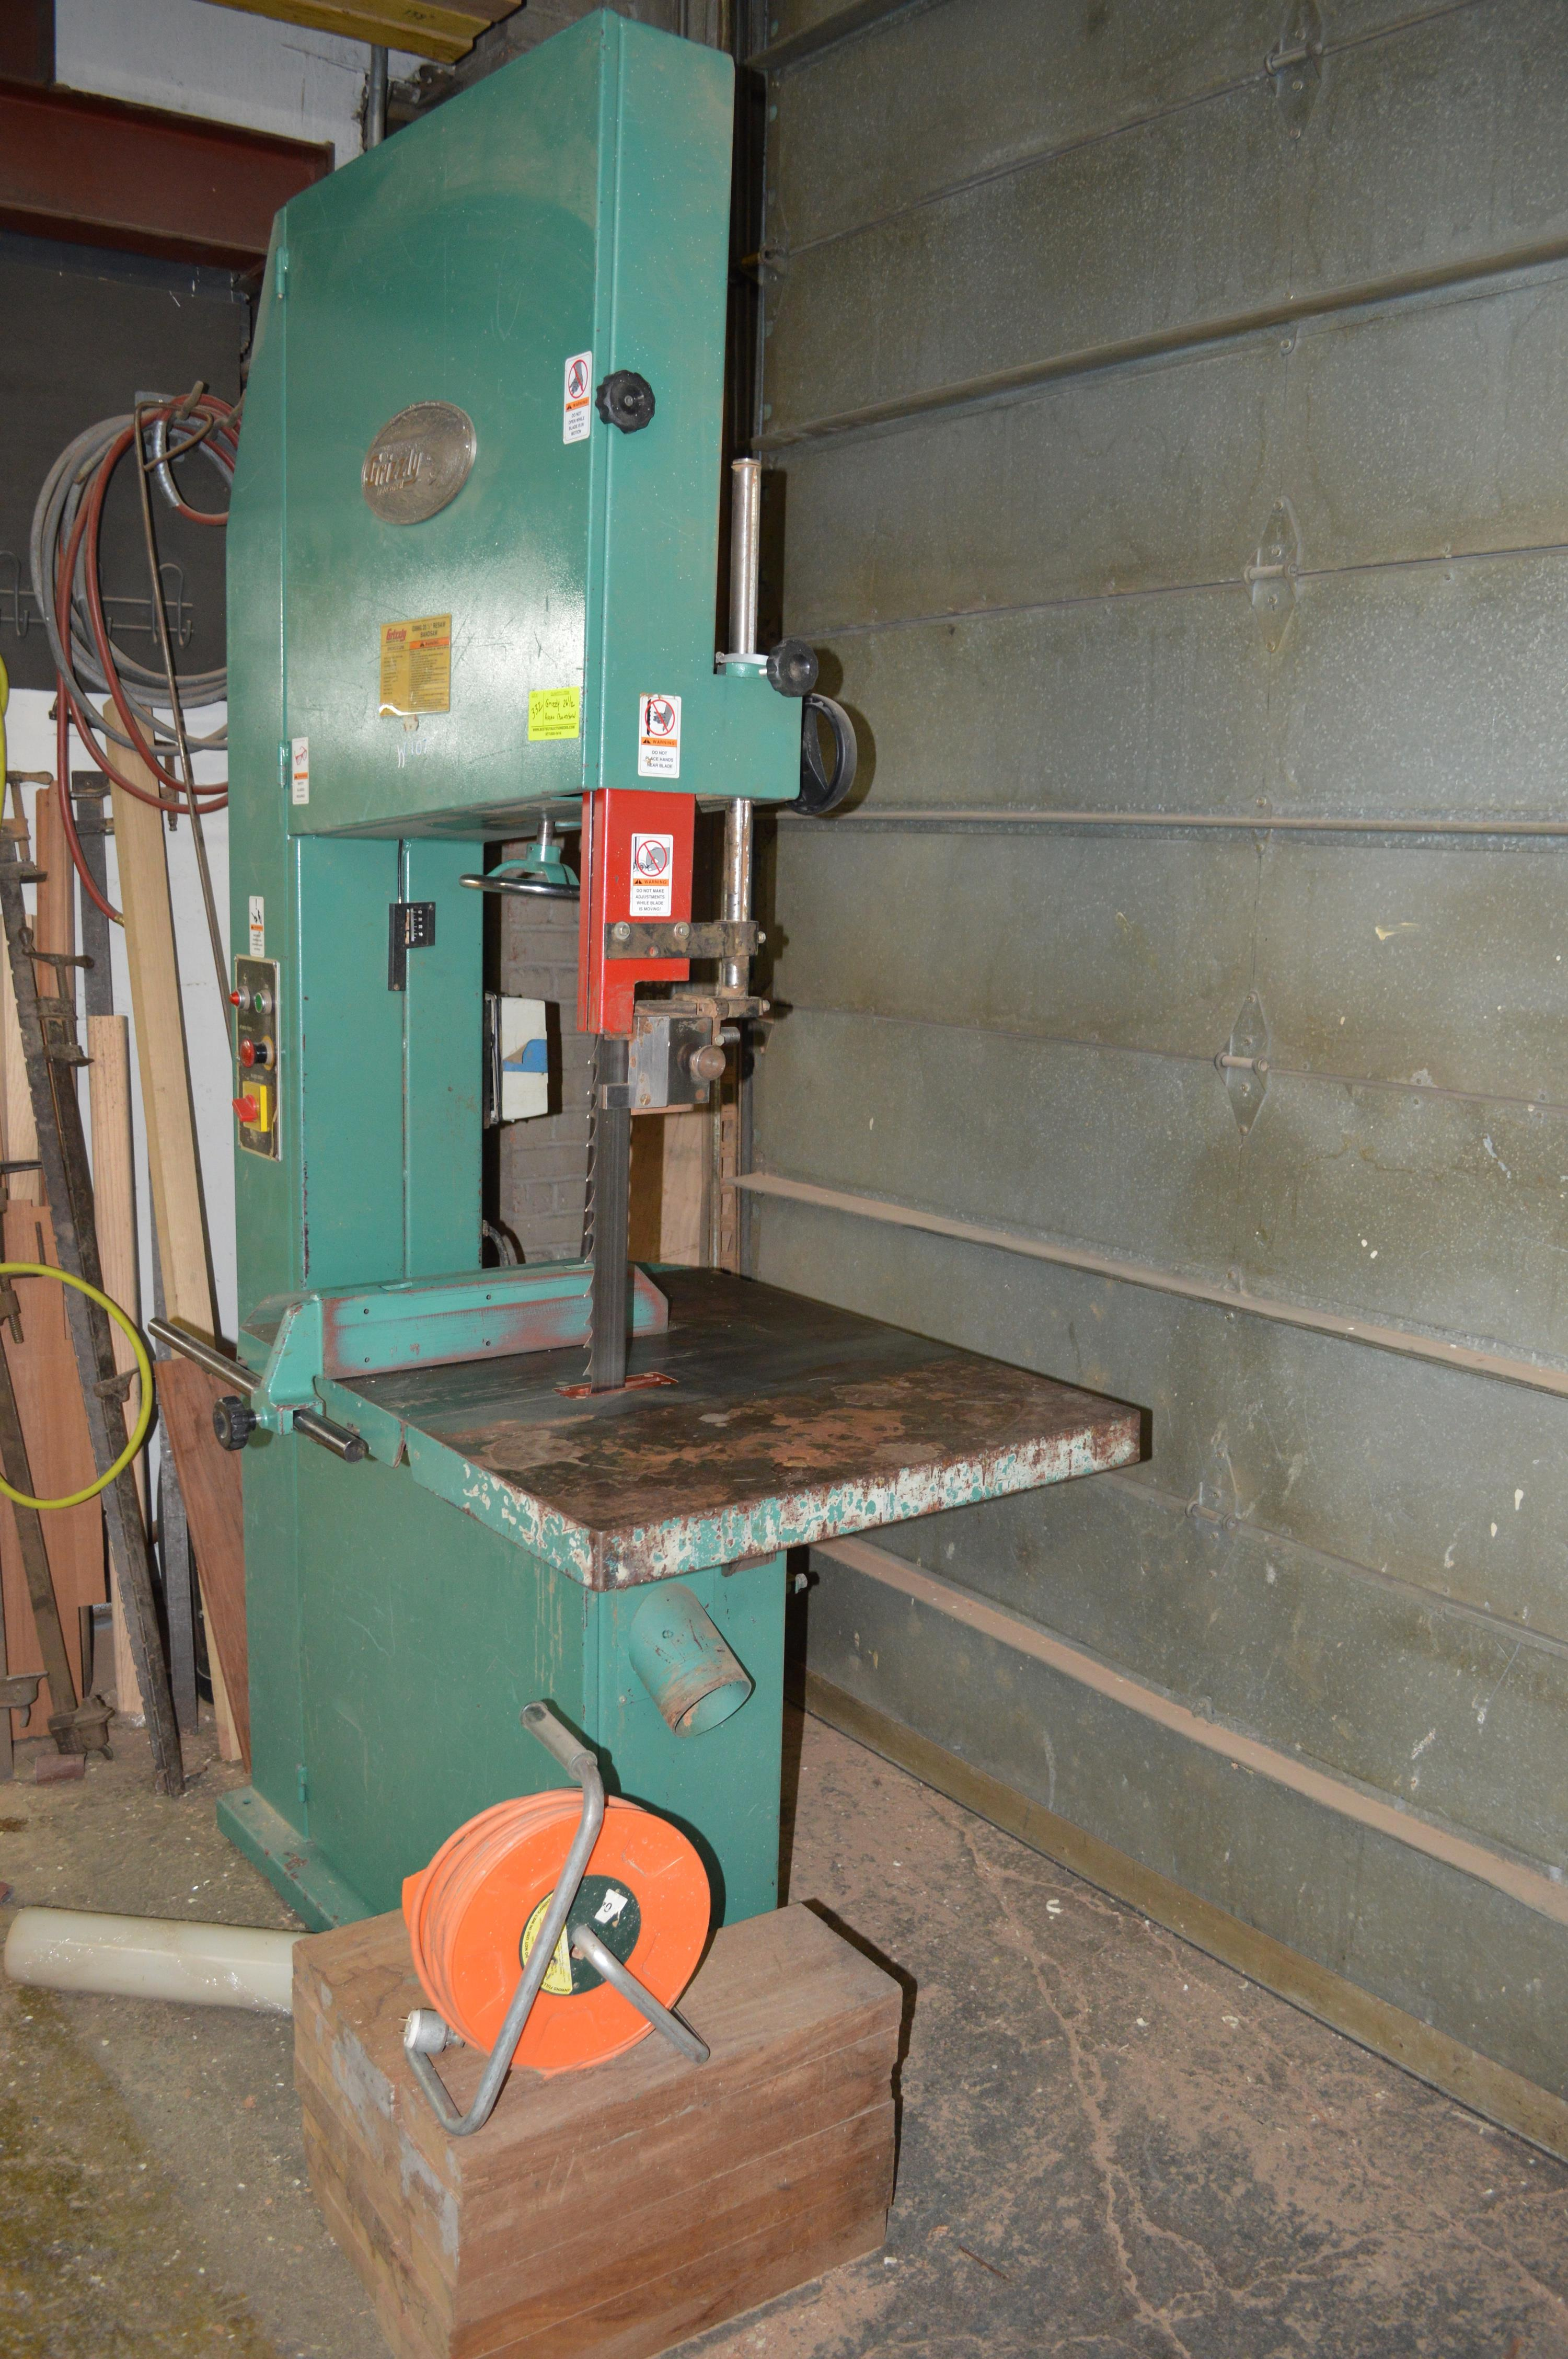 Lot 332 - GRIZZLEY BRAND 26 1/2 INCH RESAW BAND SAW